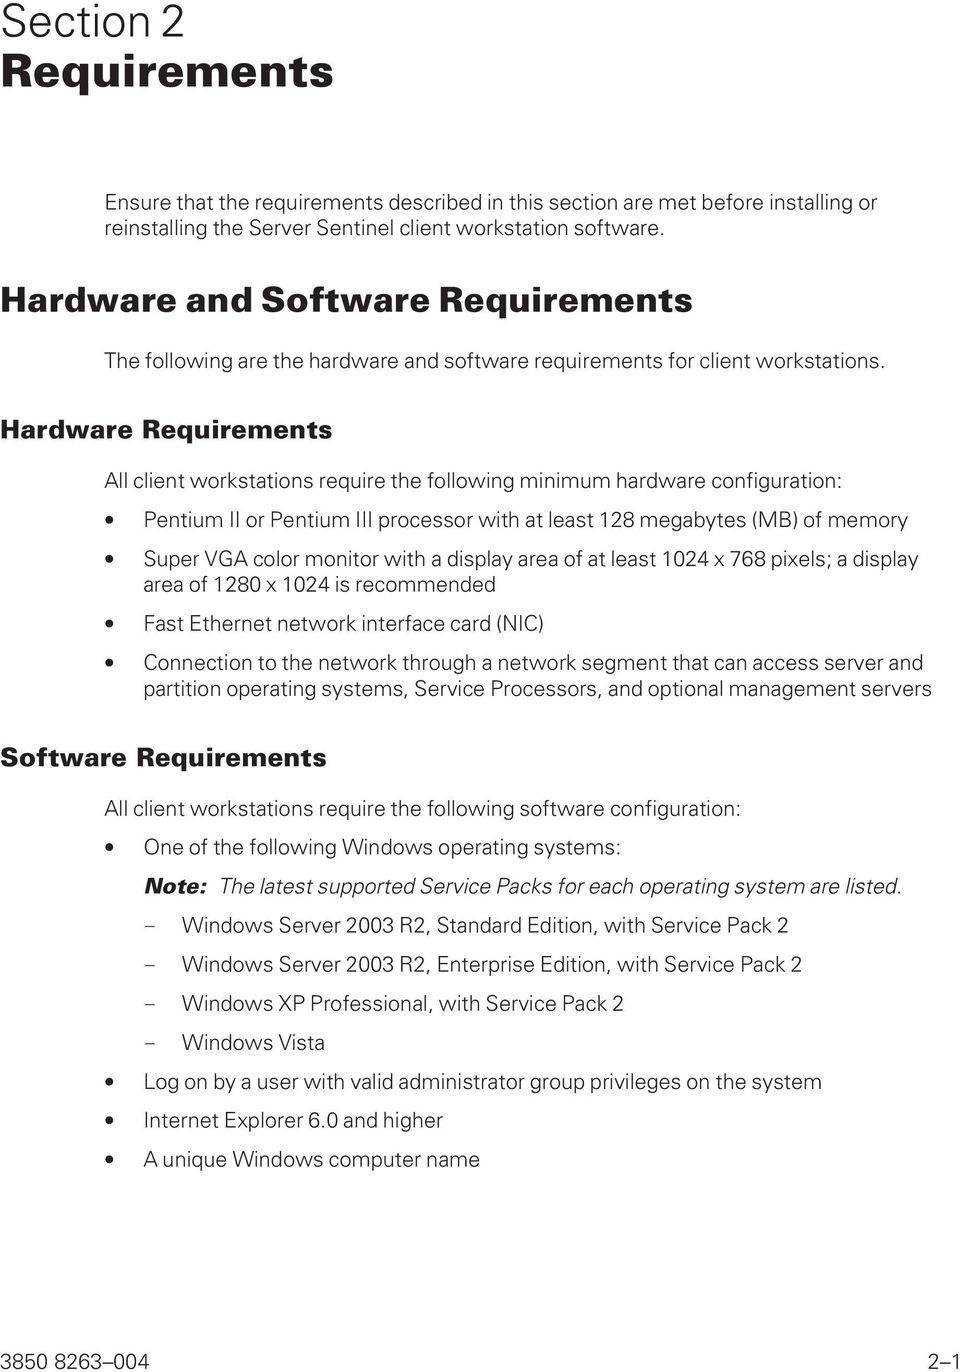 Hardware Requirements All client workstations require the following minimum hardware configuration: Pentium II or Pentium III processor with at least 128 megabytes (MB) of memory Super VGA color